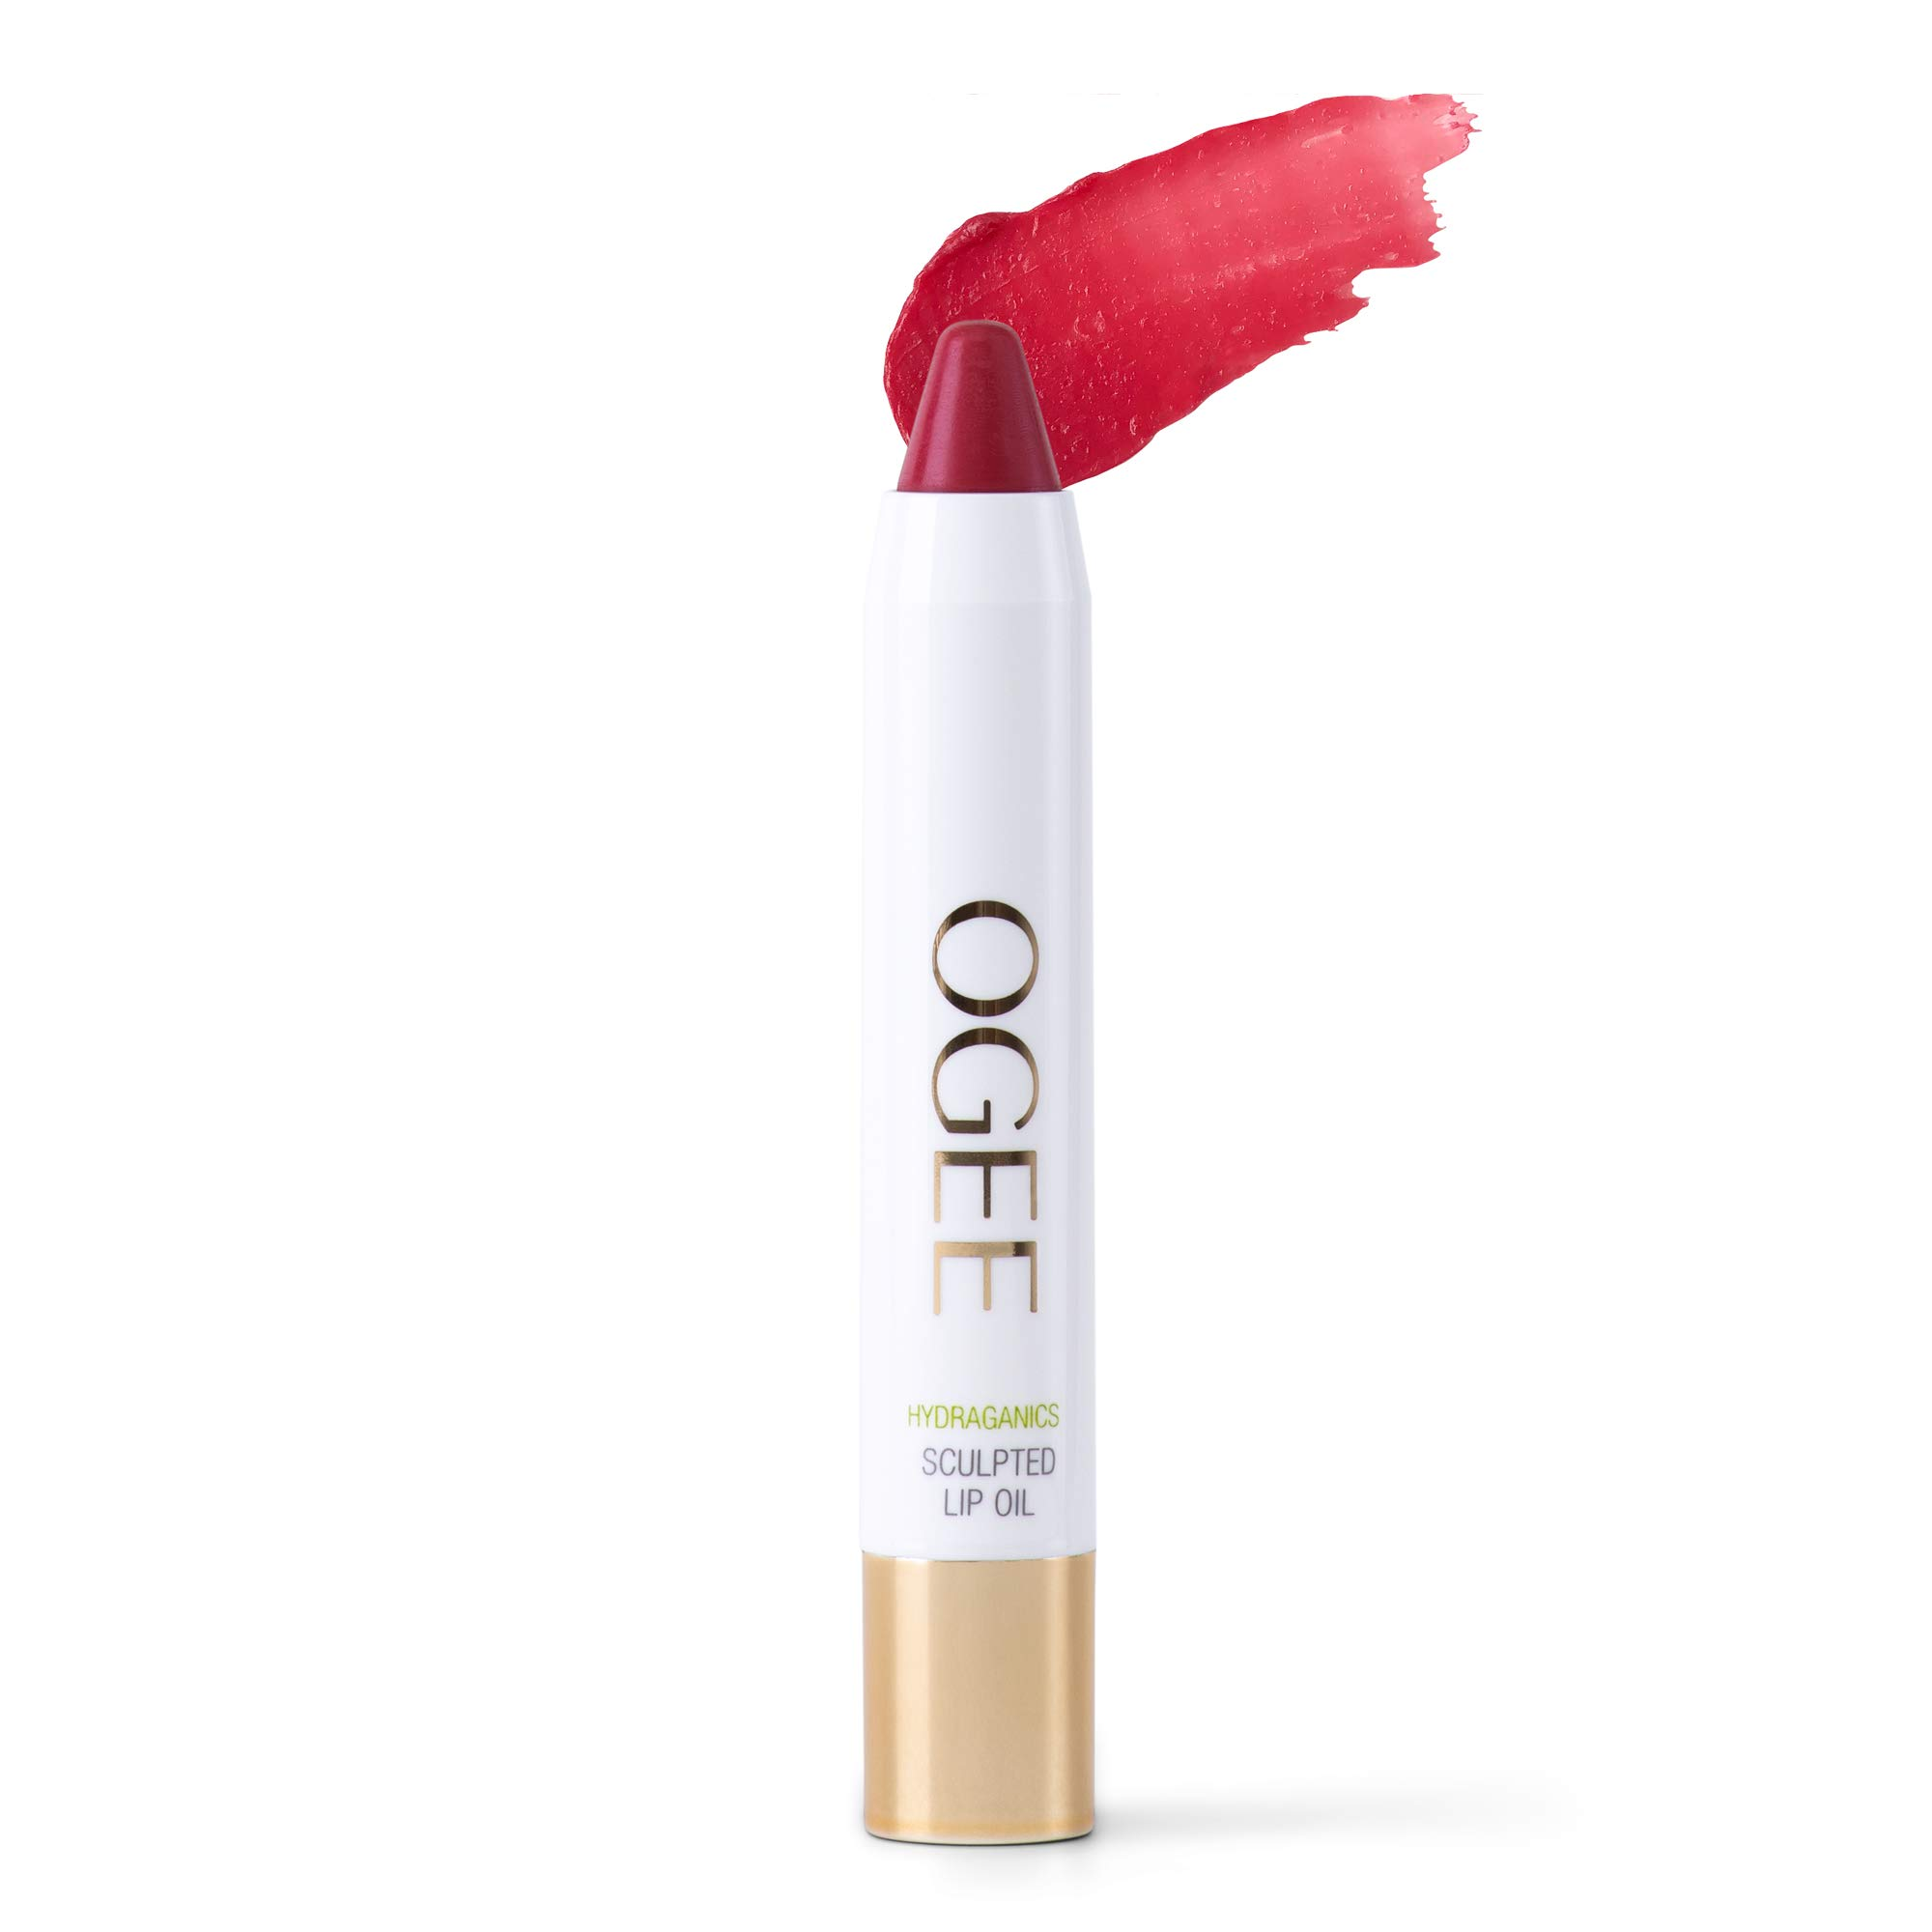 Ogee Tinted Sculpted Lip Oil - Made with 100% Organic Coconut Oil, Jojoba Oil, and Vitamin E - Best as Lip Balm, Lip Color or Lip Treatment - Petunia